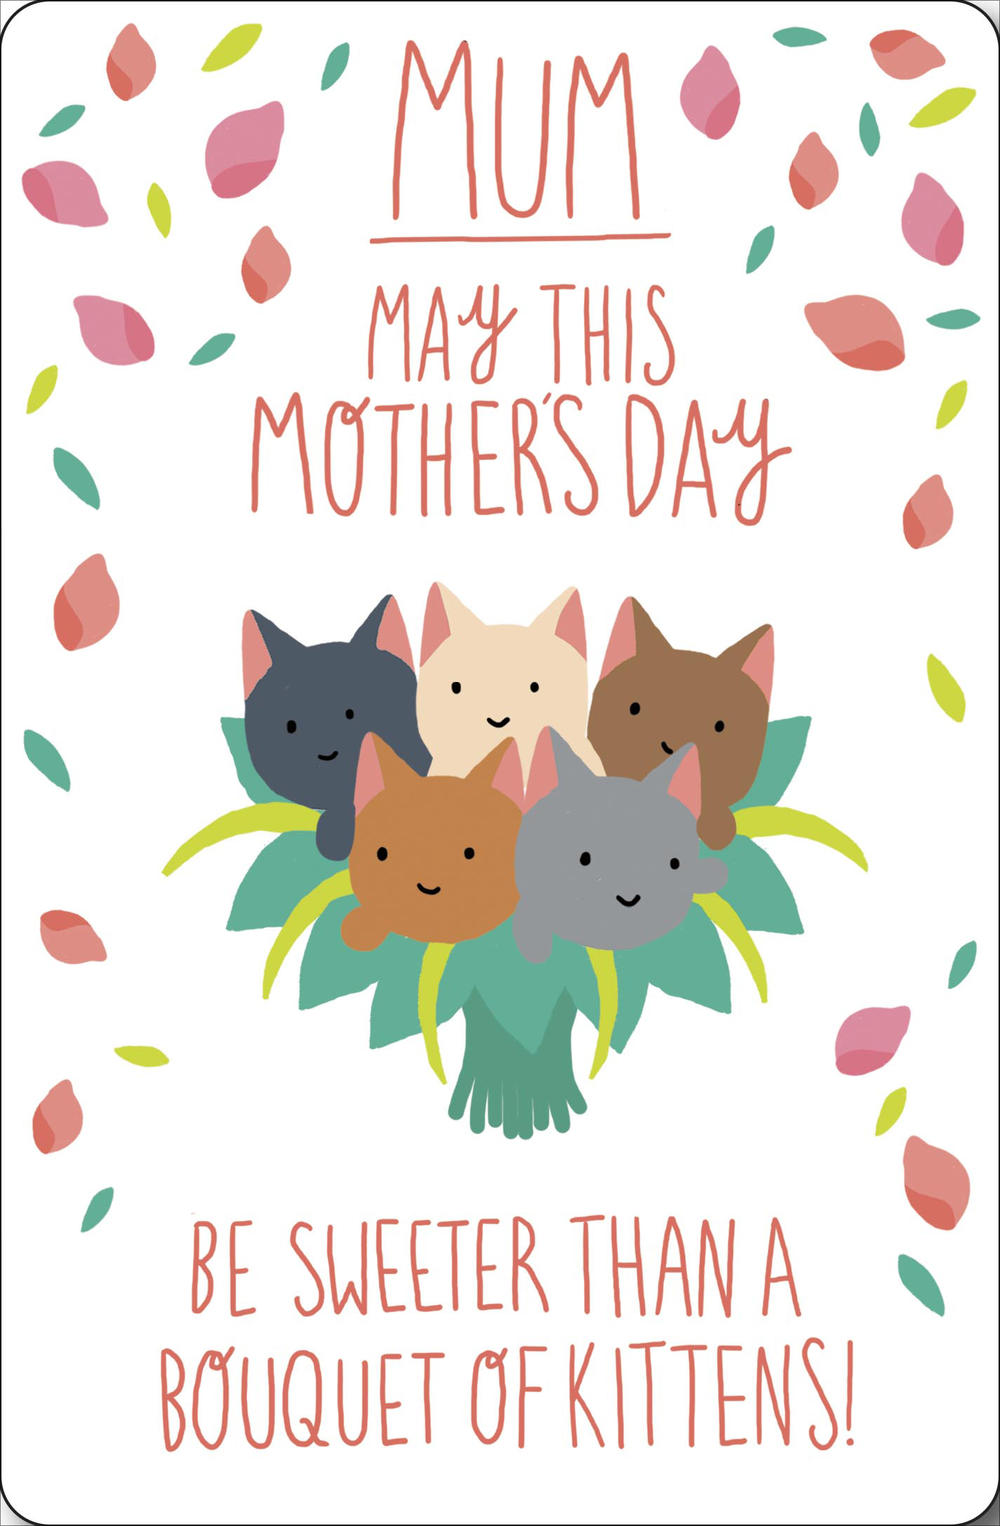 Bouquet Of Kittens Happy Mother's Day Card